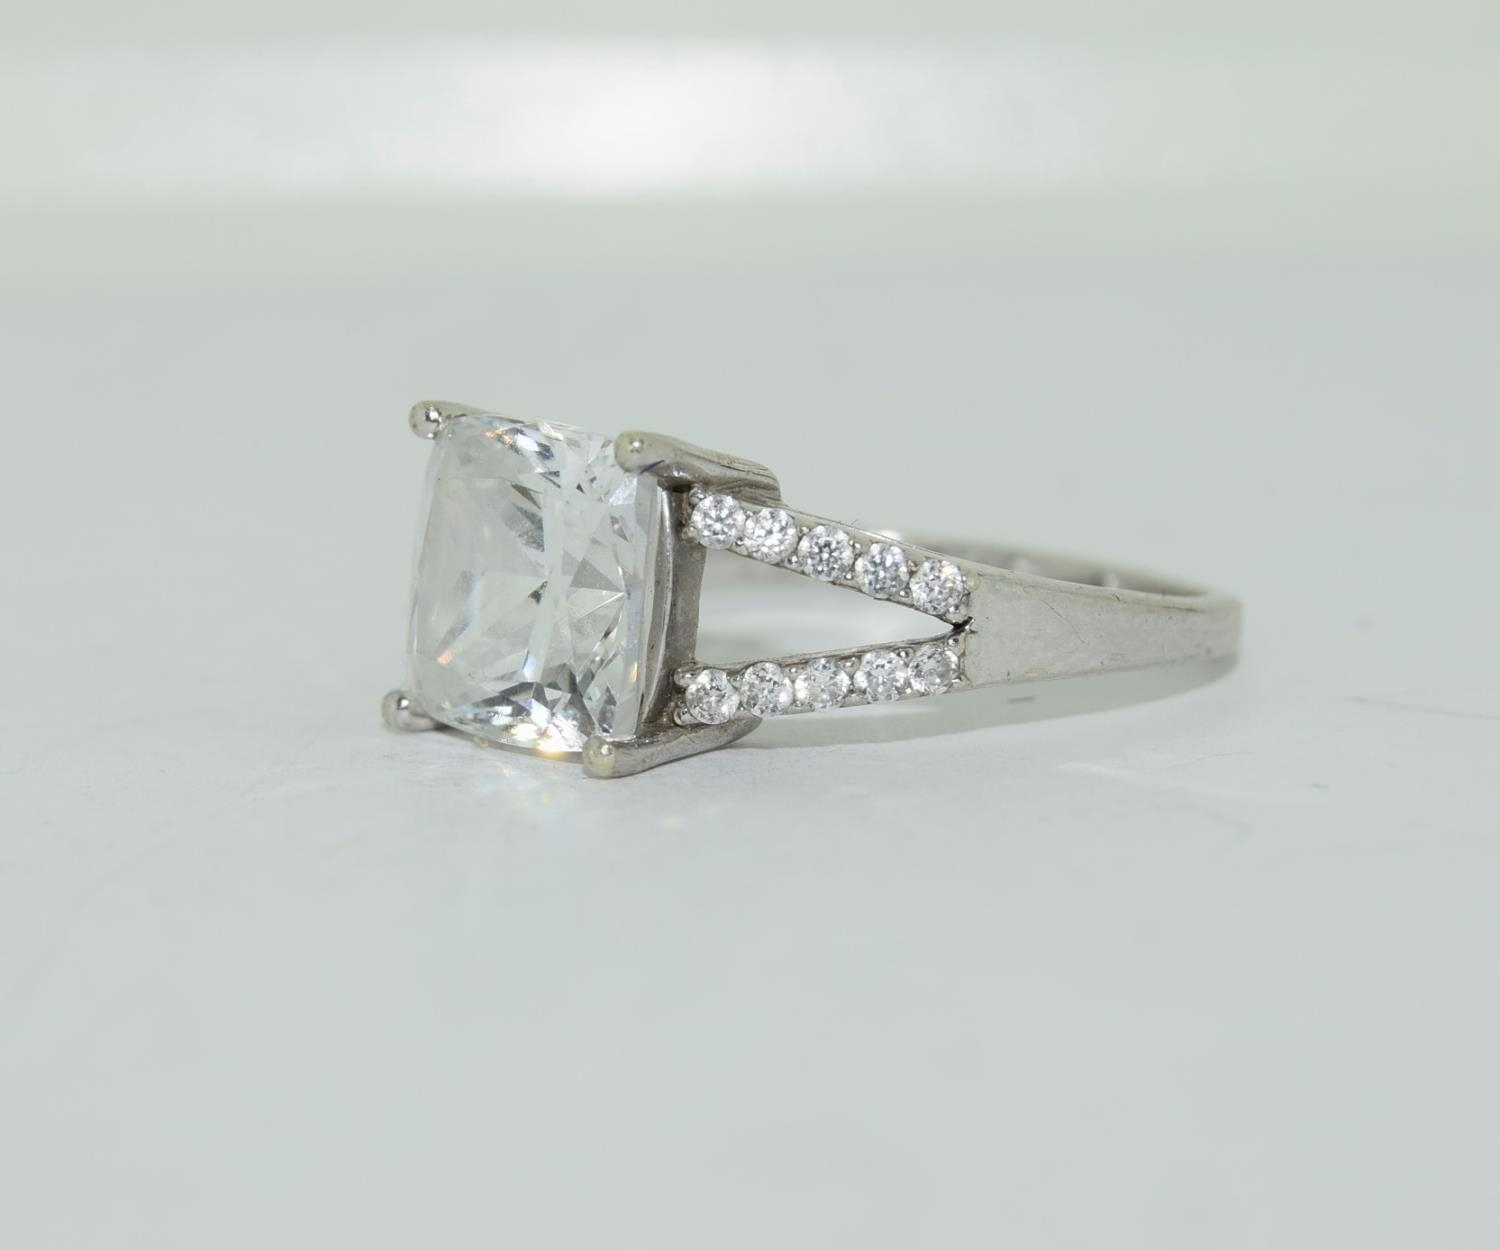 9ct white gold ladies square set solitare ring size R - Image 8 of 12